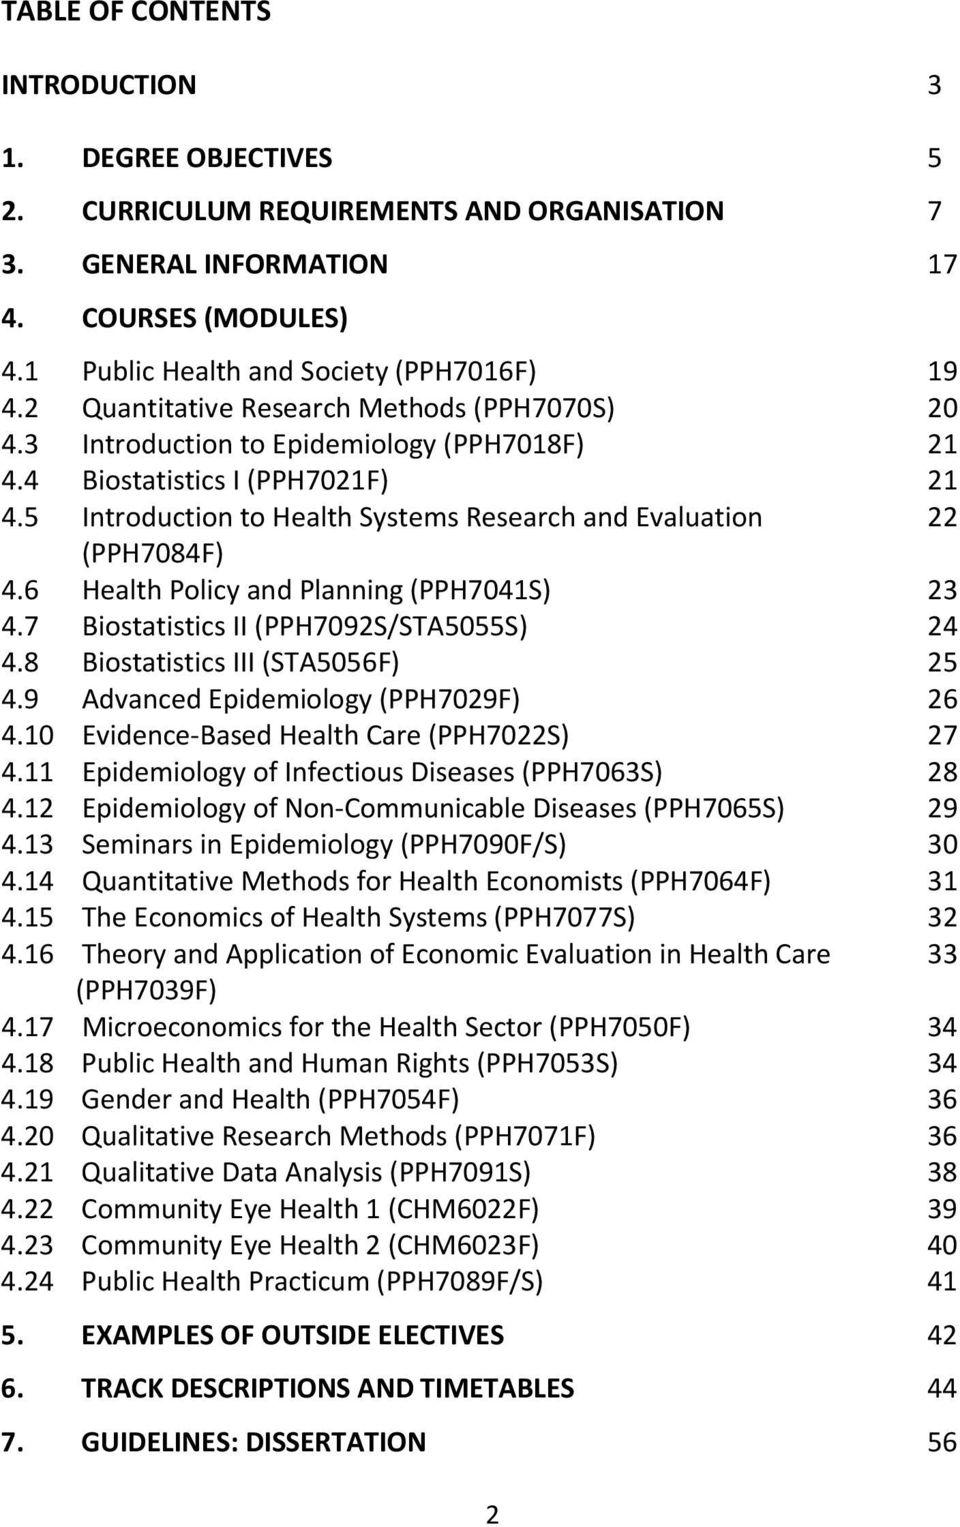 5 Introduction to Health Systems Research and Evaluation 22 (PPH7084F) 4.6 Health Policy and Planning (PPH7041S) 23 4.7 Biostatistics II (PPH7092S/STA5055S) 24 4.8 Biostatistics III (STA5056F) 25 4.